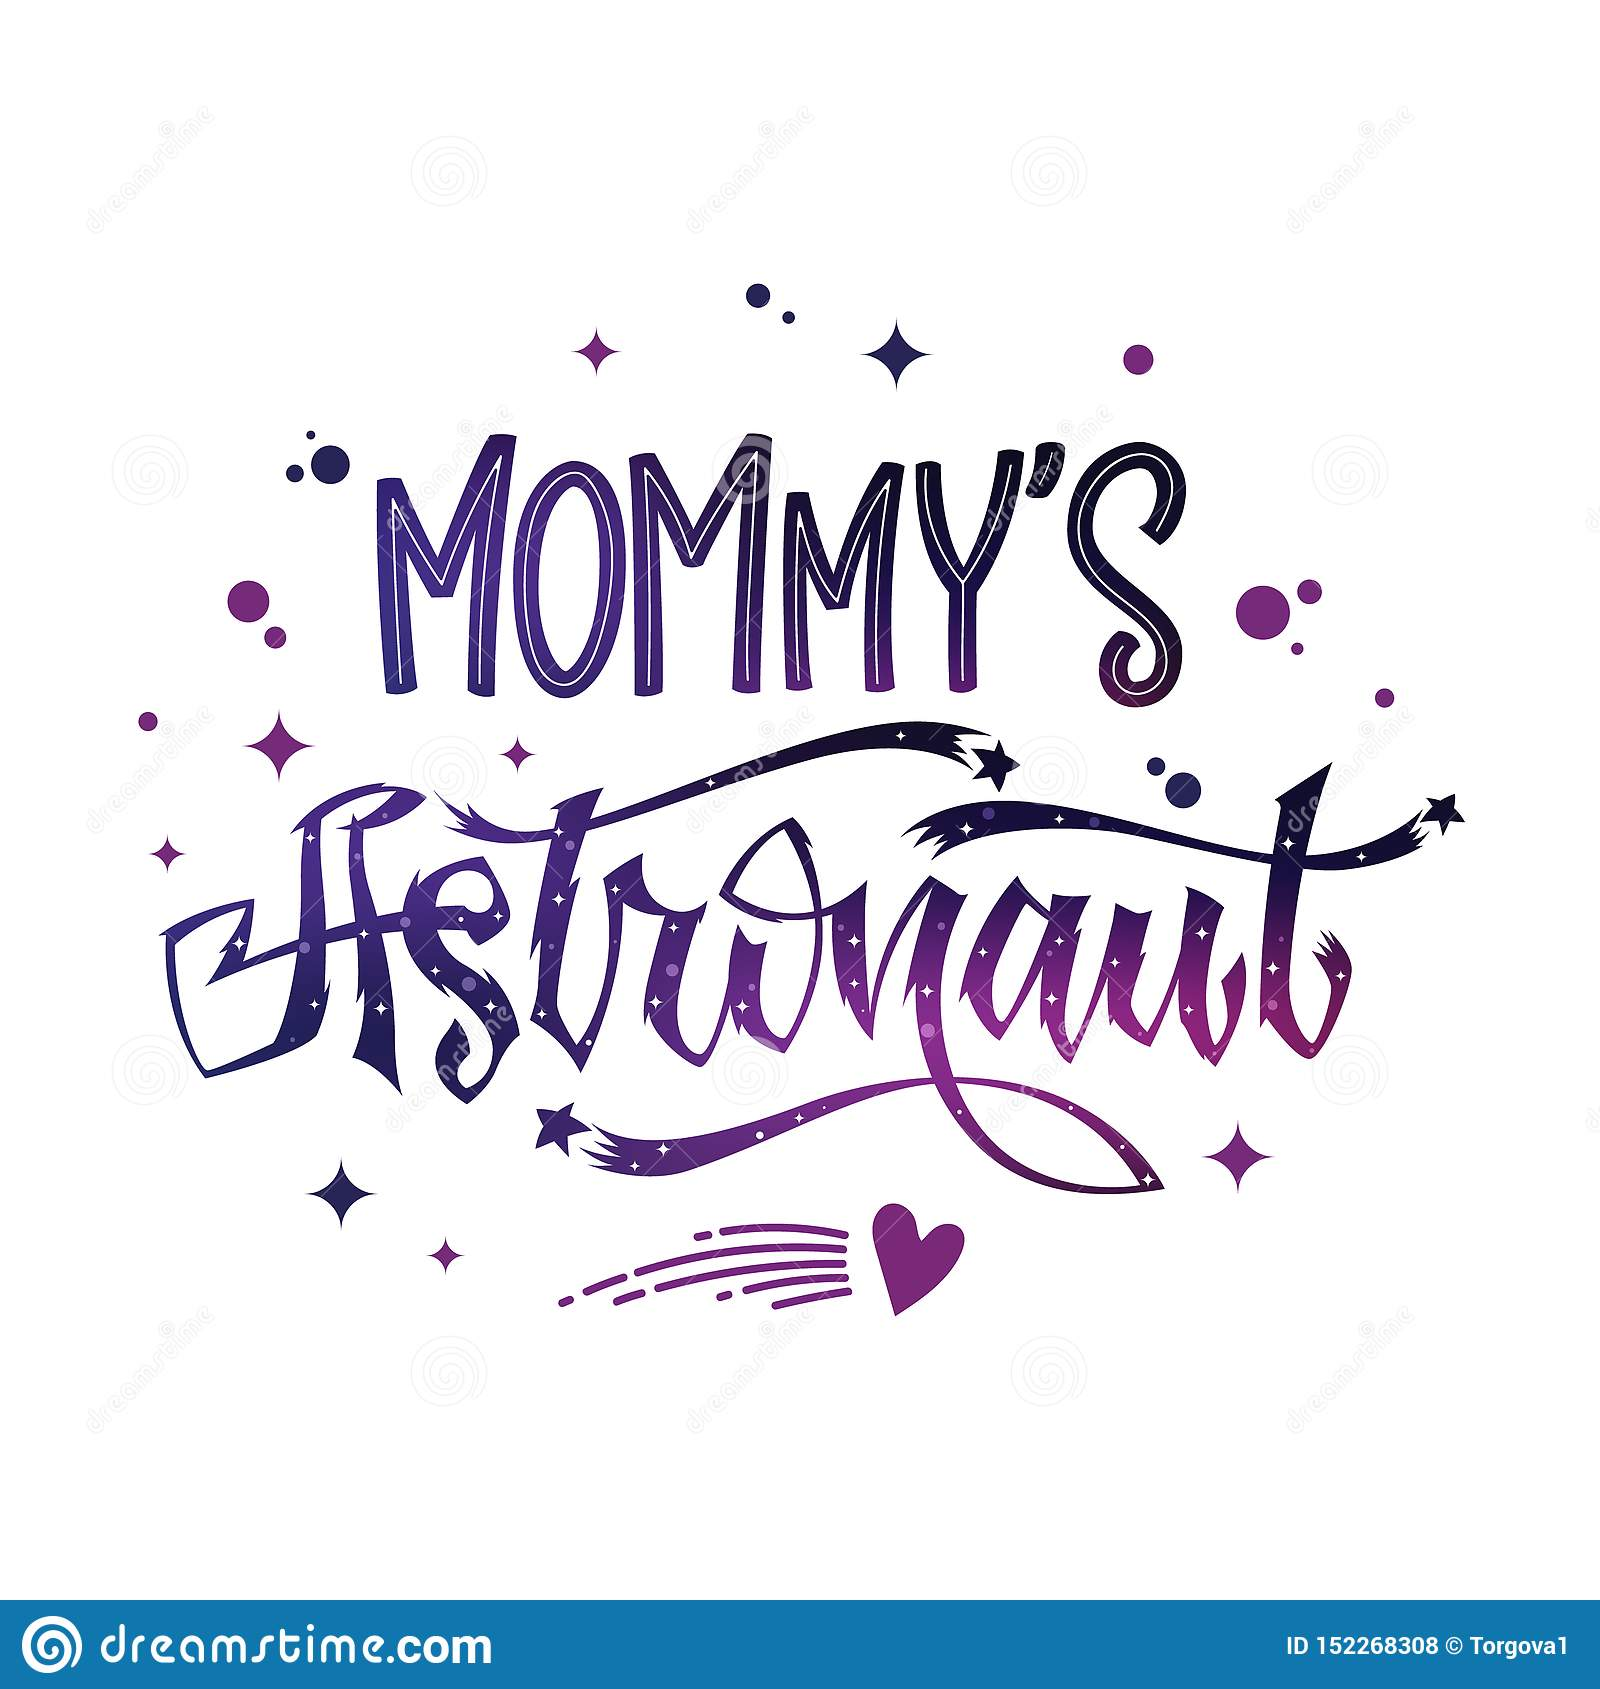 Mommy`s Astronaut quote. Baby shower hand drawn lettering logo phrase